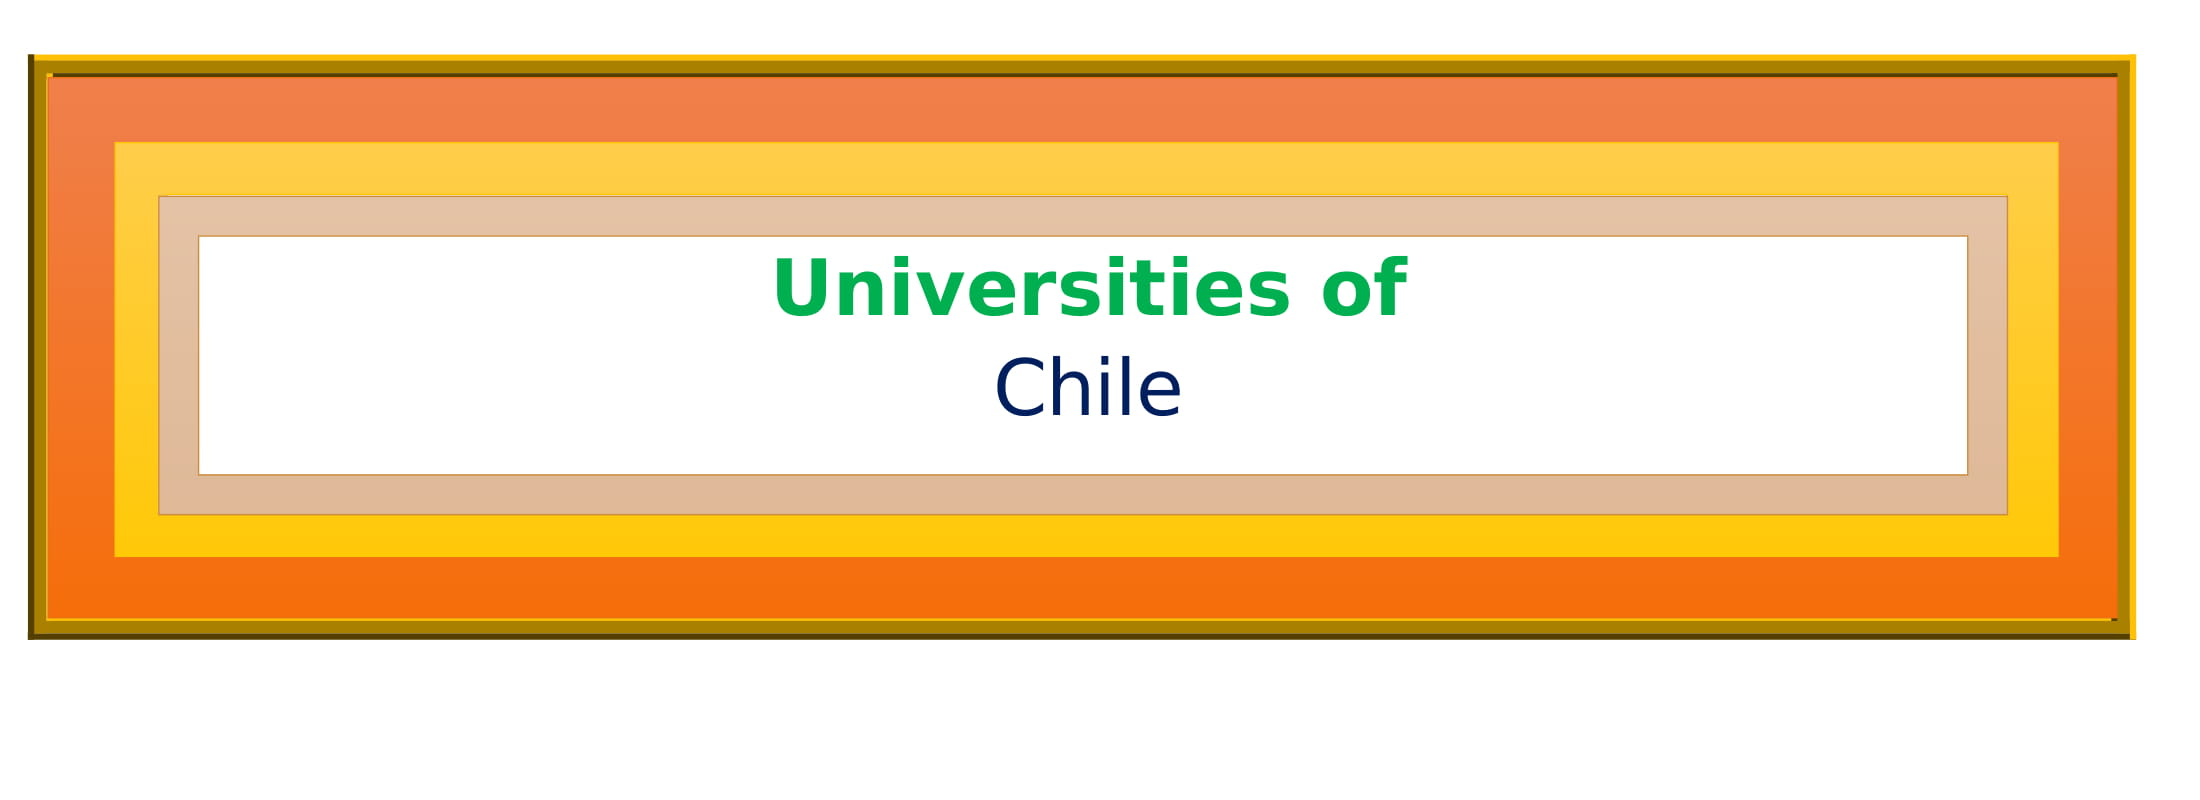 List of Universities in Chile